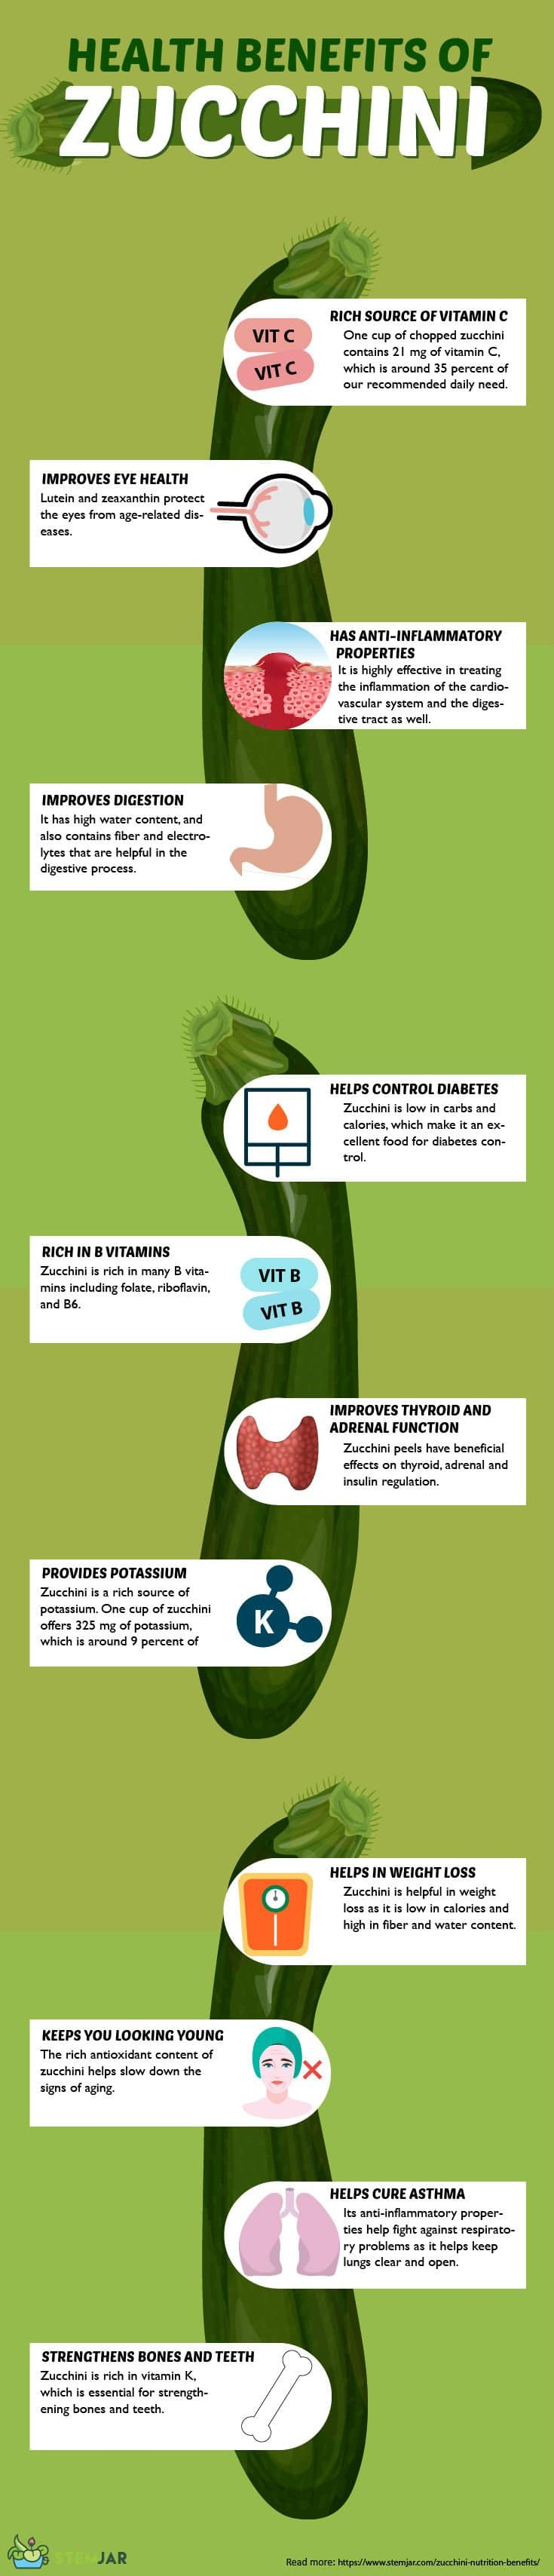 Not only zucchini is low in glycemic index & calories, but it also contains many essential nutrients like manganese, potassium, vitamin A & C.